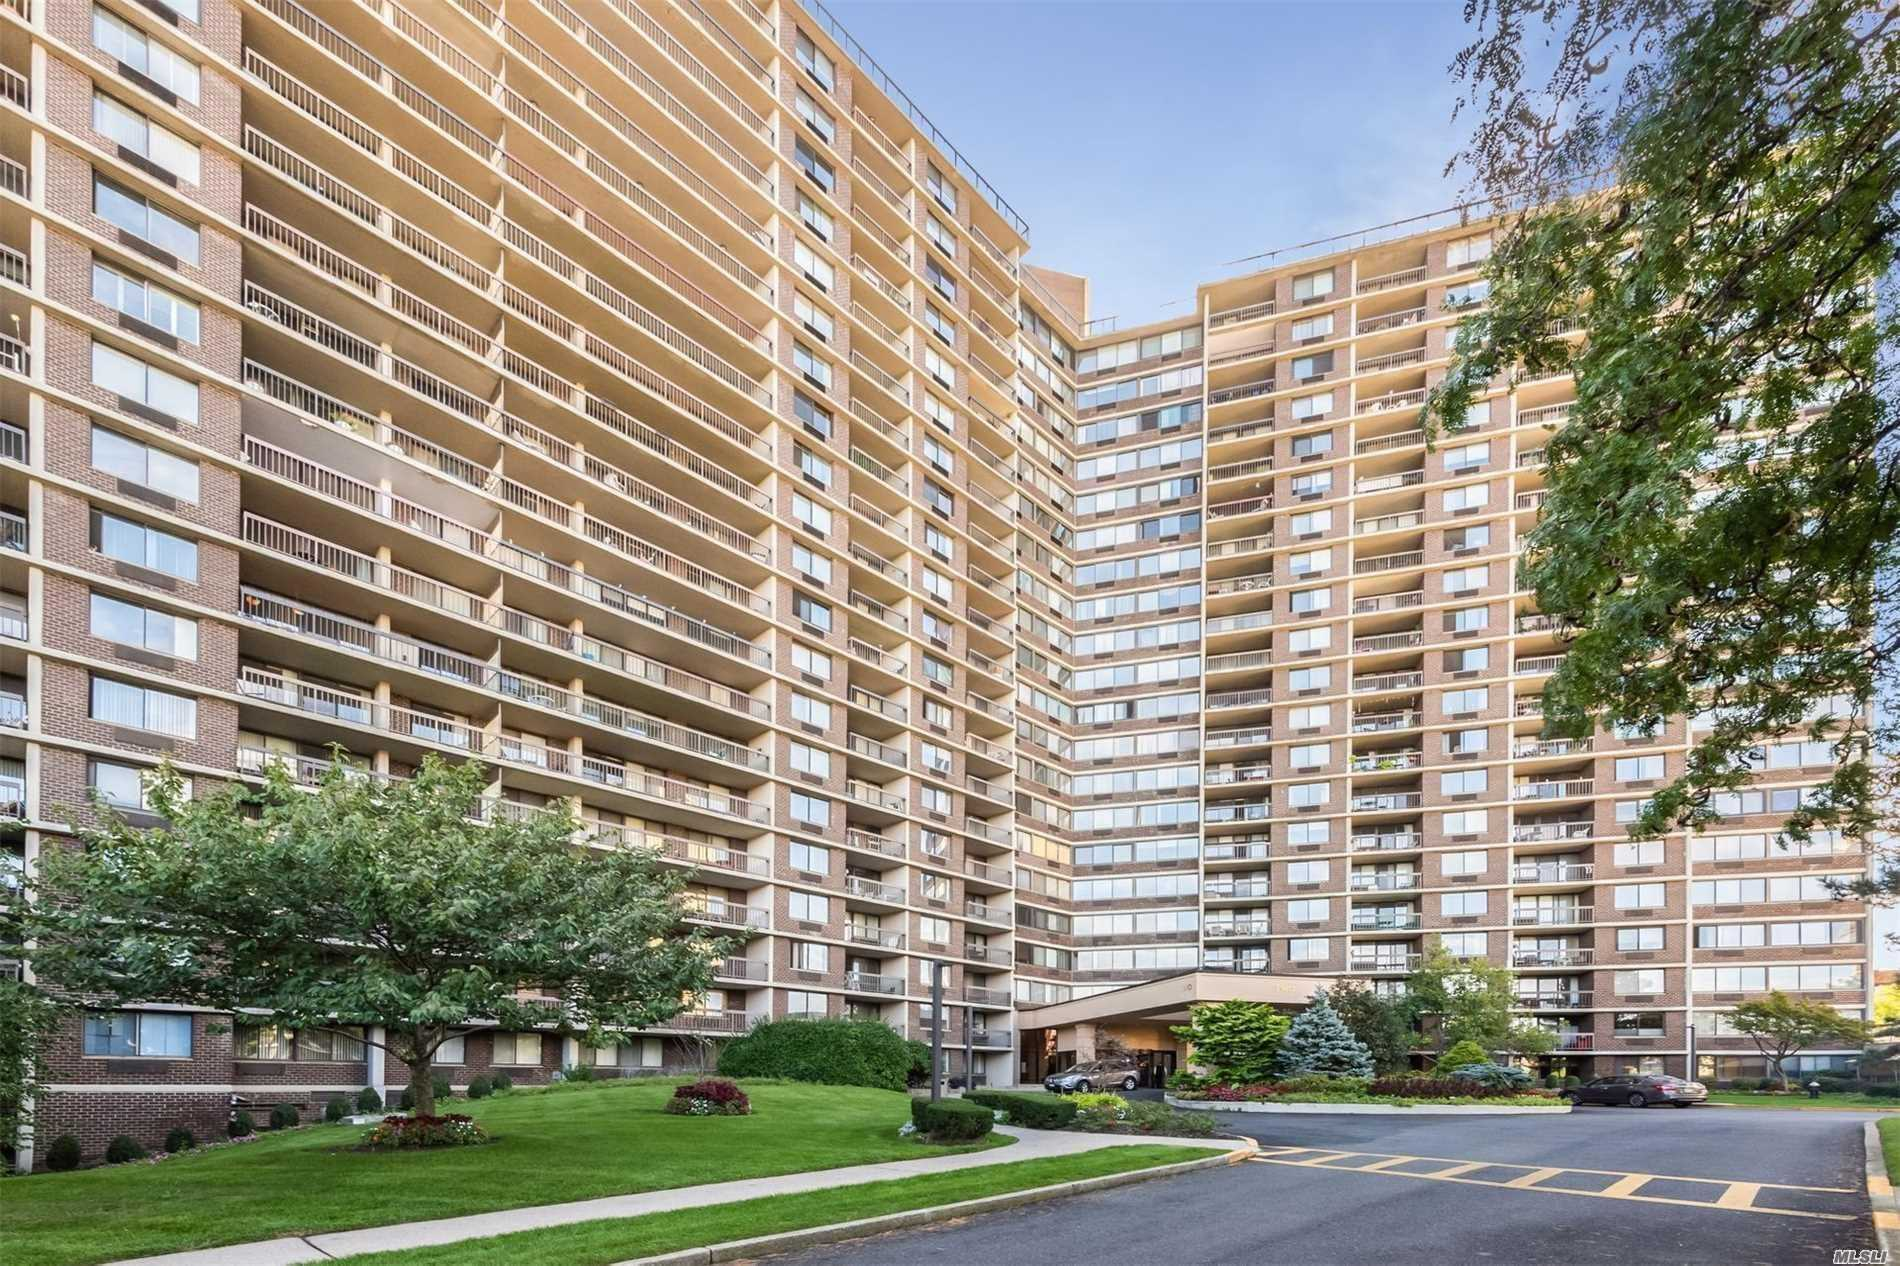 Quiet Corner Unit With Beautiful Bridge And Water View! Modern Kitchen With New Stainless Steel Appliances. Gated Community With 24 Hr Security, Doorman & Concierge, Health & Fitness Center, Dry Cleaners, Convenience Store. Close To Shopping Center. Express Bus To Manhattan.